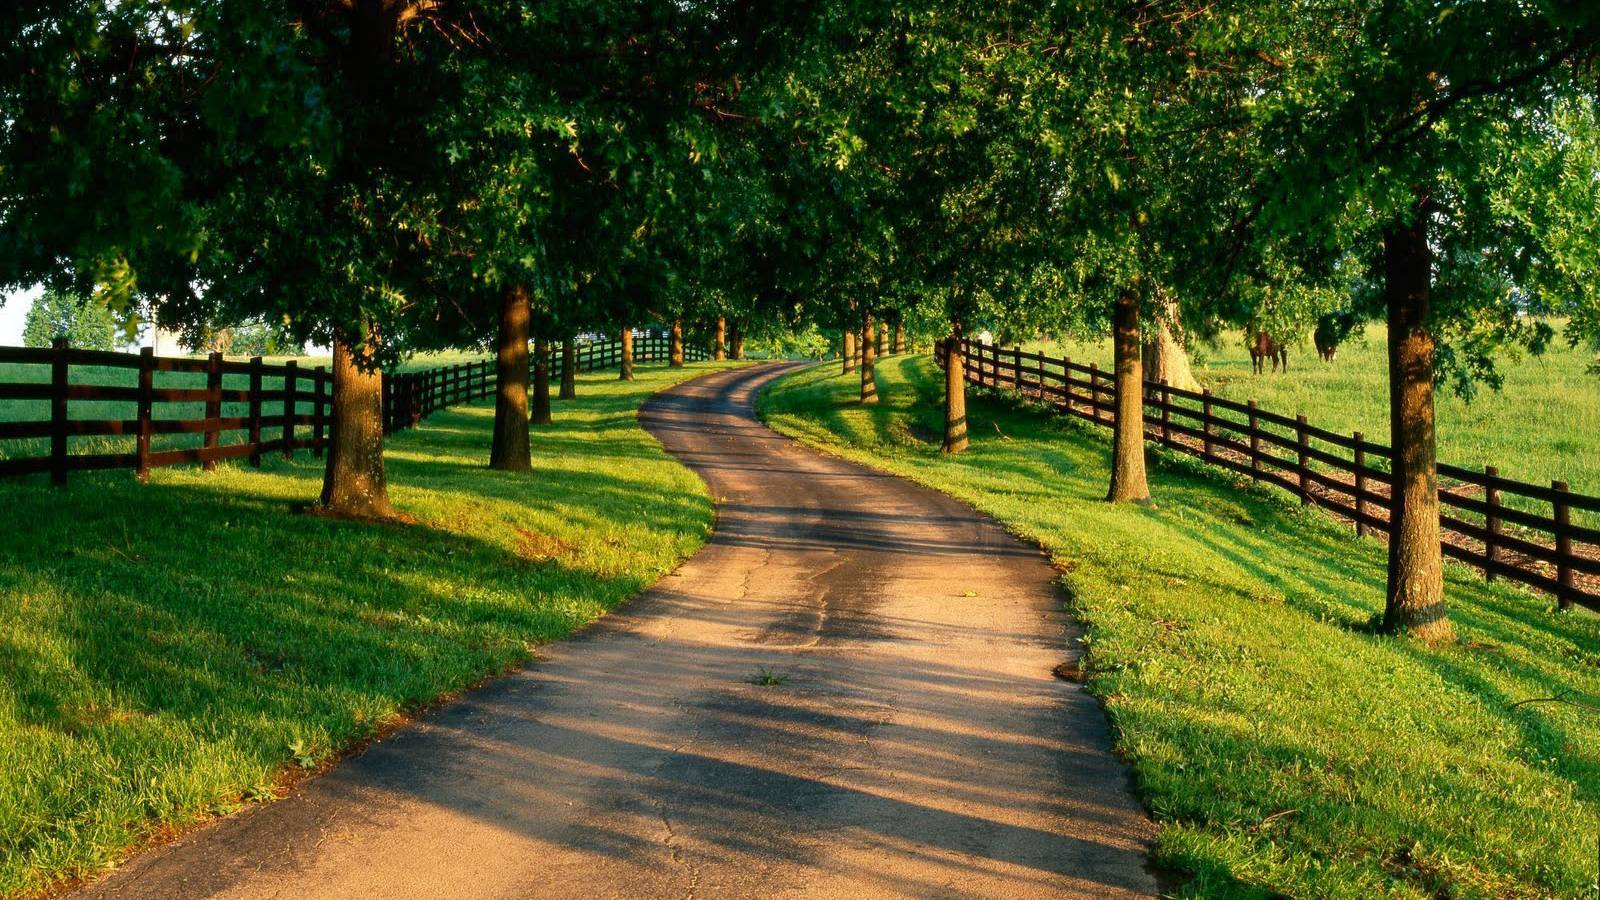 Delightful Summer Country Road Desktop Wallpaper « Desktopia.